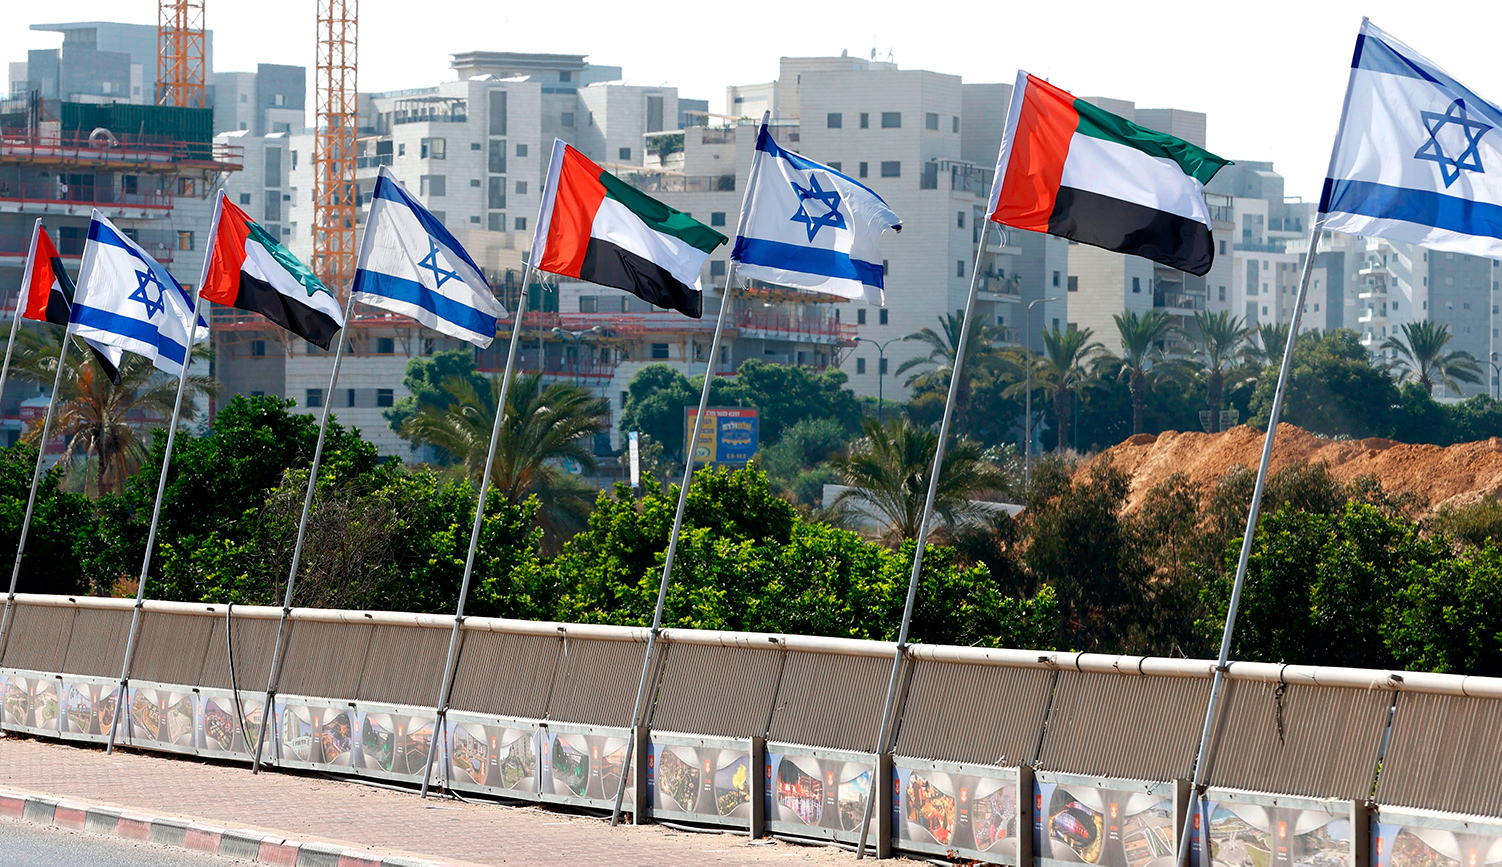 Israeli and United Arab Emirates flags line a road in the Israeli city of Netanya on August 16, 2020. JACK GUEZ/AFP via Getty Images.